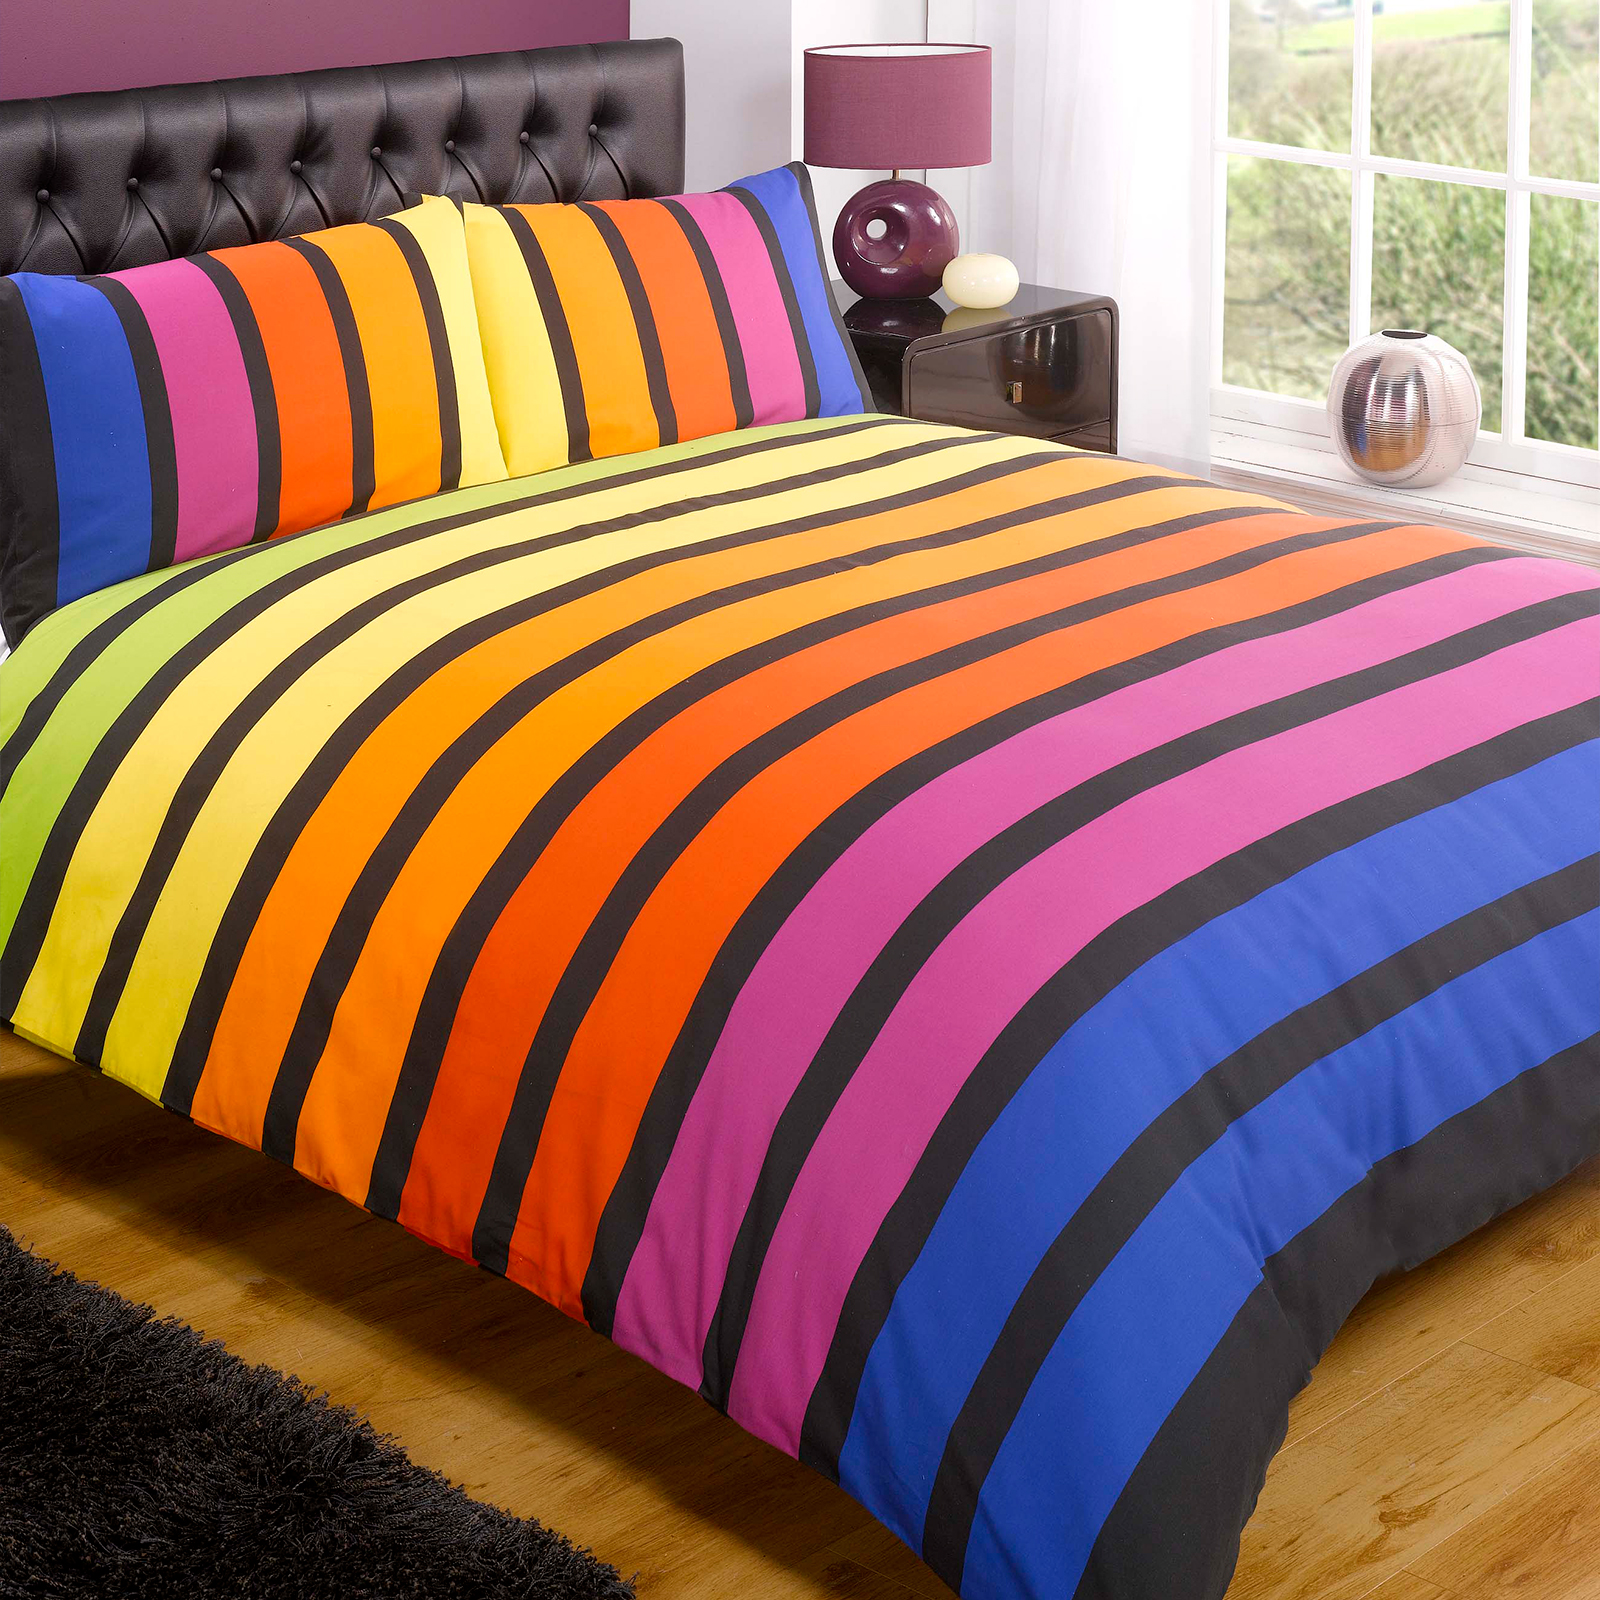 Striped Poly Cotton Duvet Cover Modern Quilt Cover Bedding